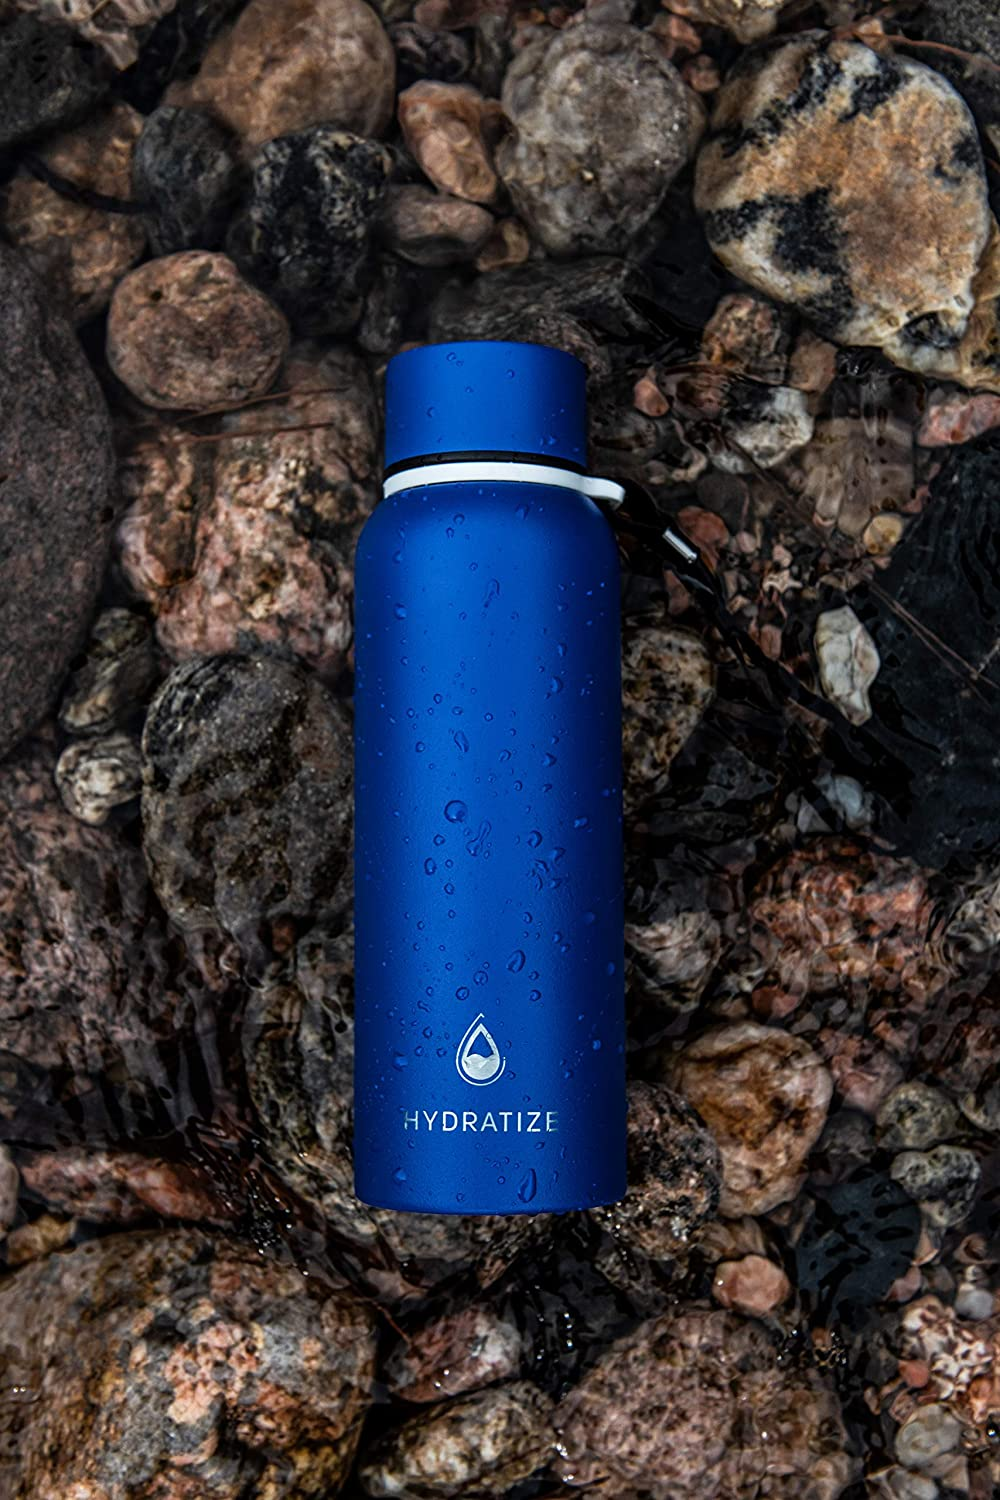 Hydratize Stainless Steel Lightweight Water Bottle-Vacuum /& Thermal Insulation Waterbottle-Equipped with Wide Mouth//Leak-Proof Lid